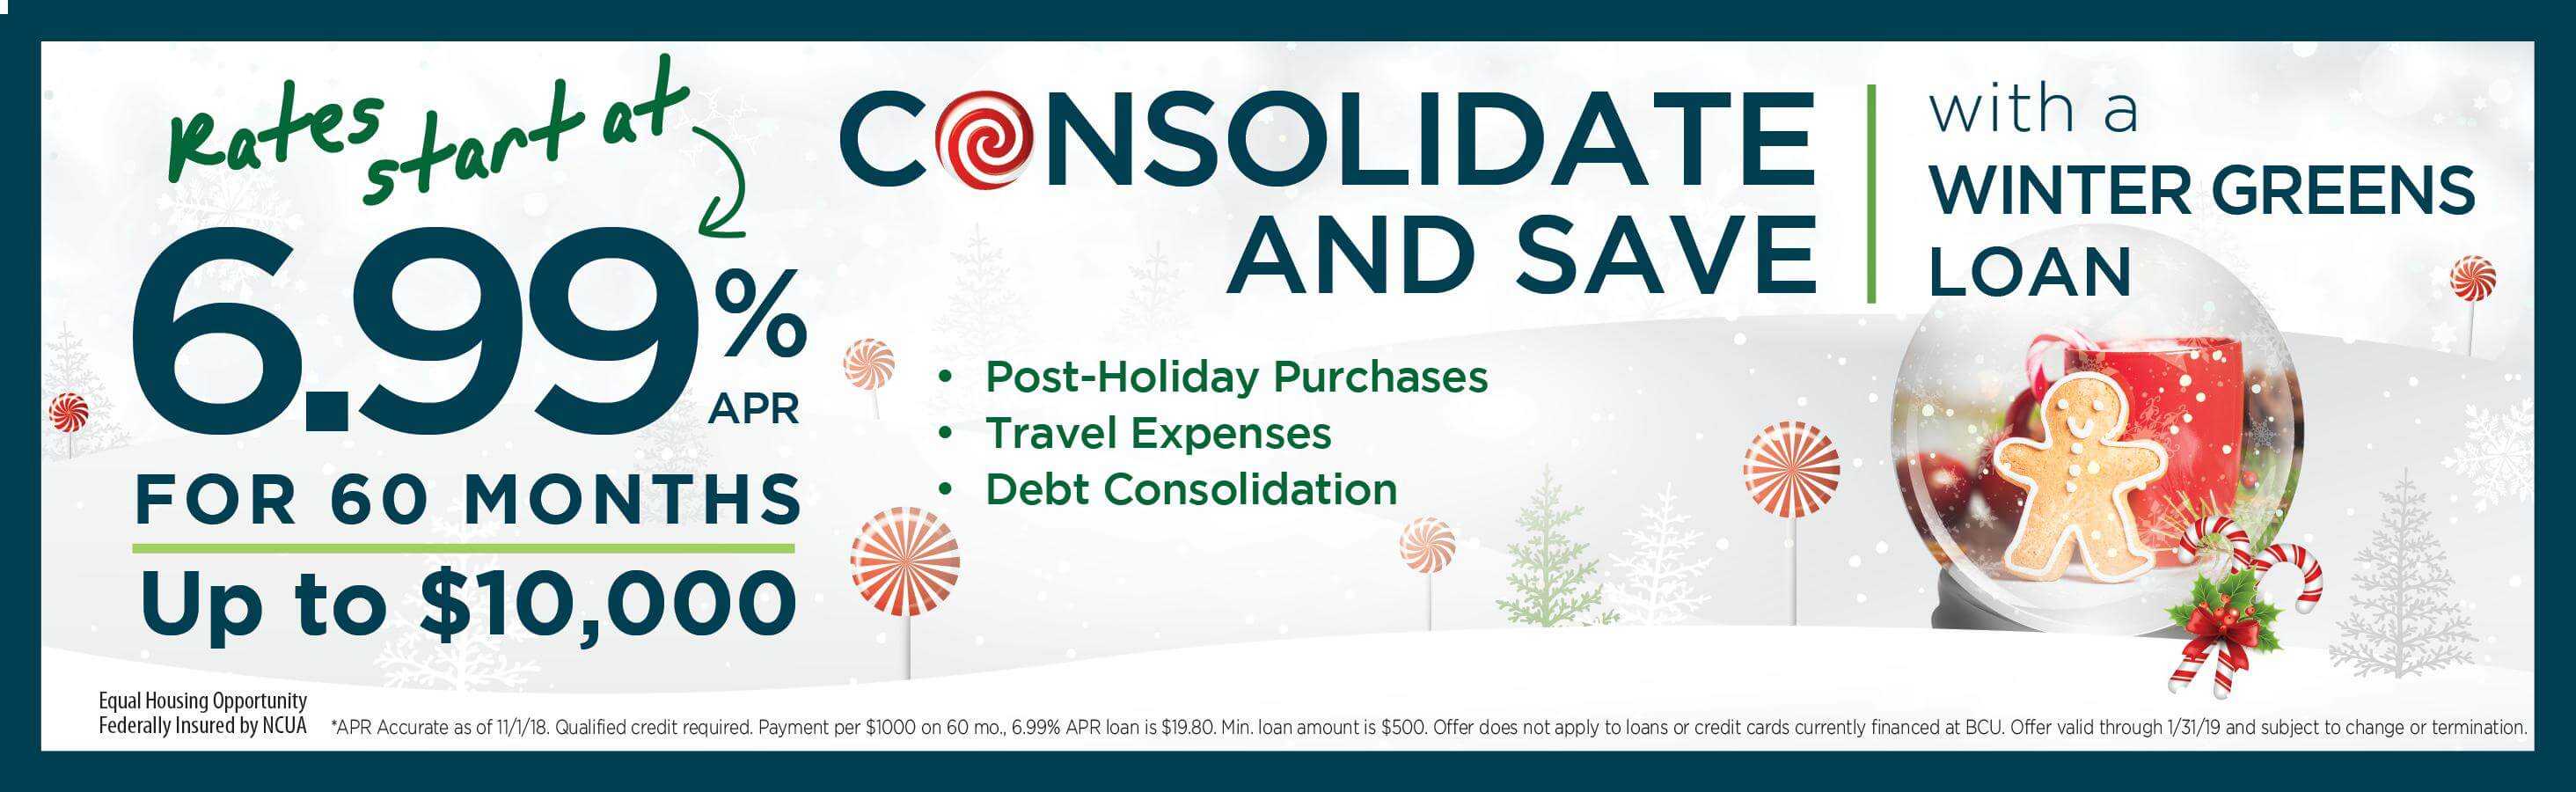 Consolidate and Save with a Winter Greens Holiday Loan